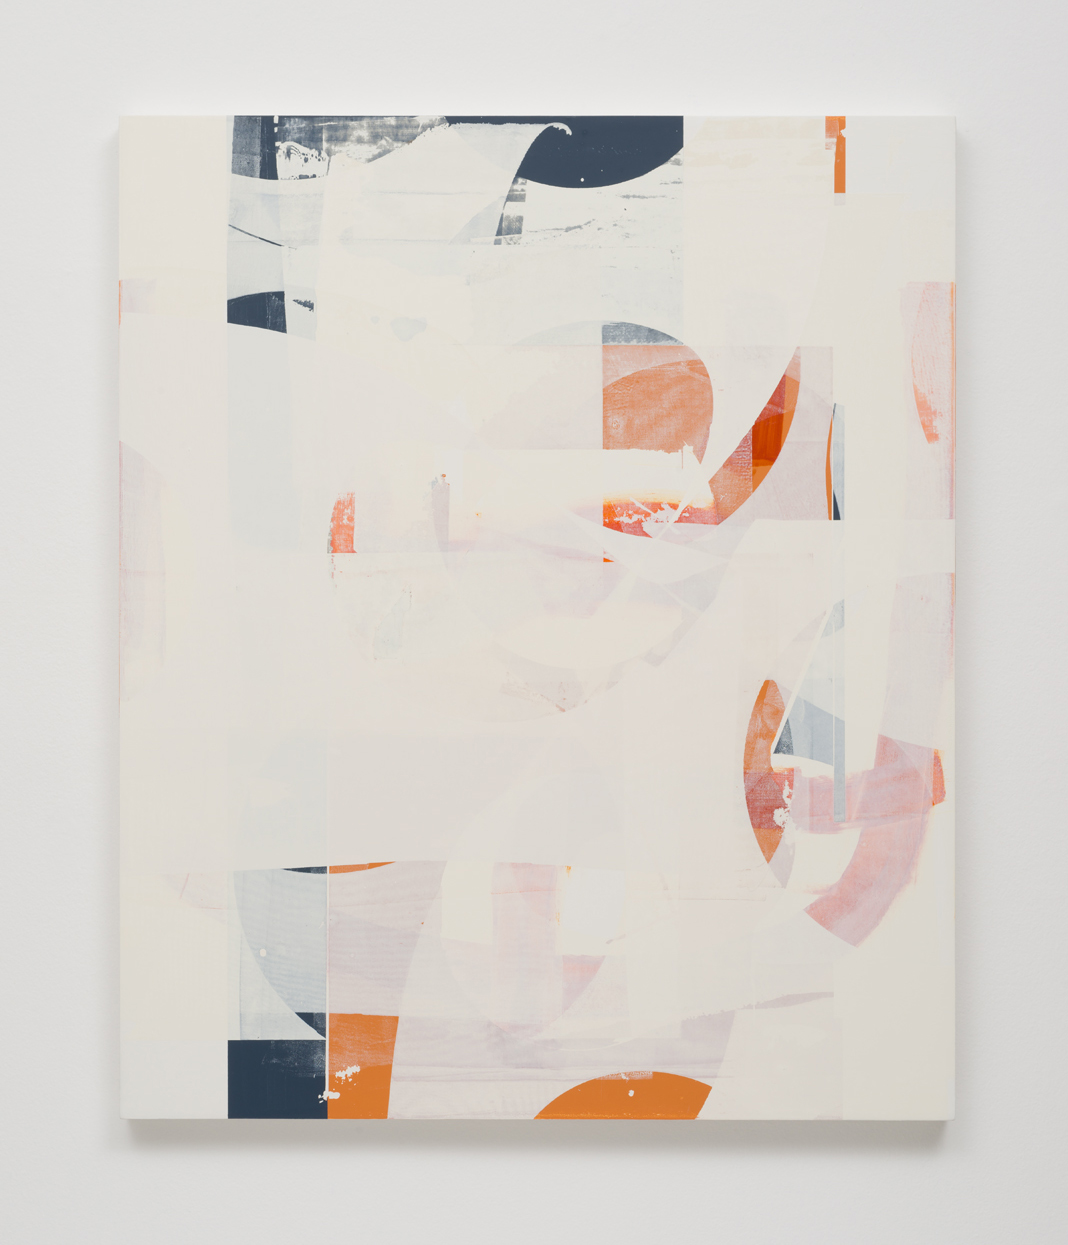 Composite 22 (catch and release), 2017  Oil and acrylic on canvas over panel  48 x 40 inches  122 x 101.6 cm